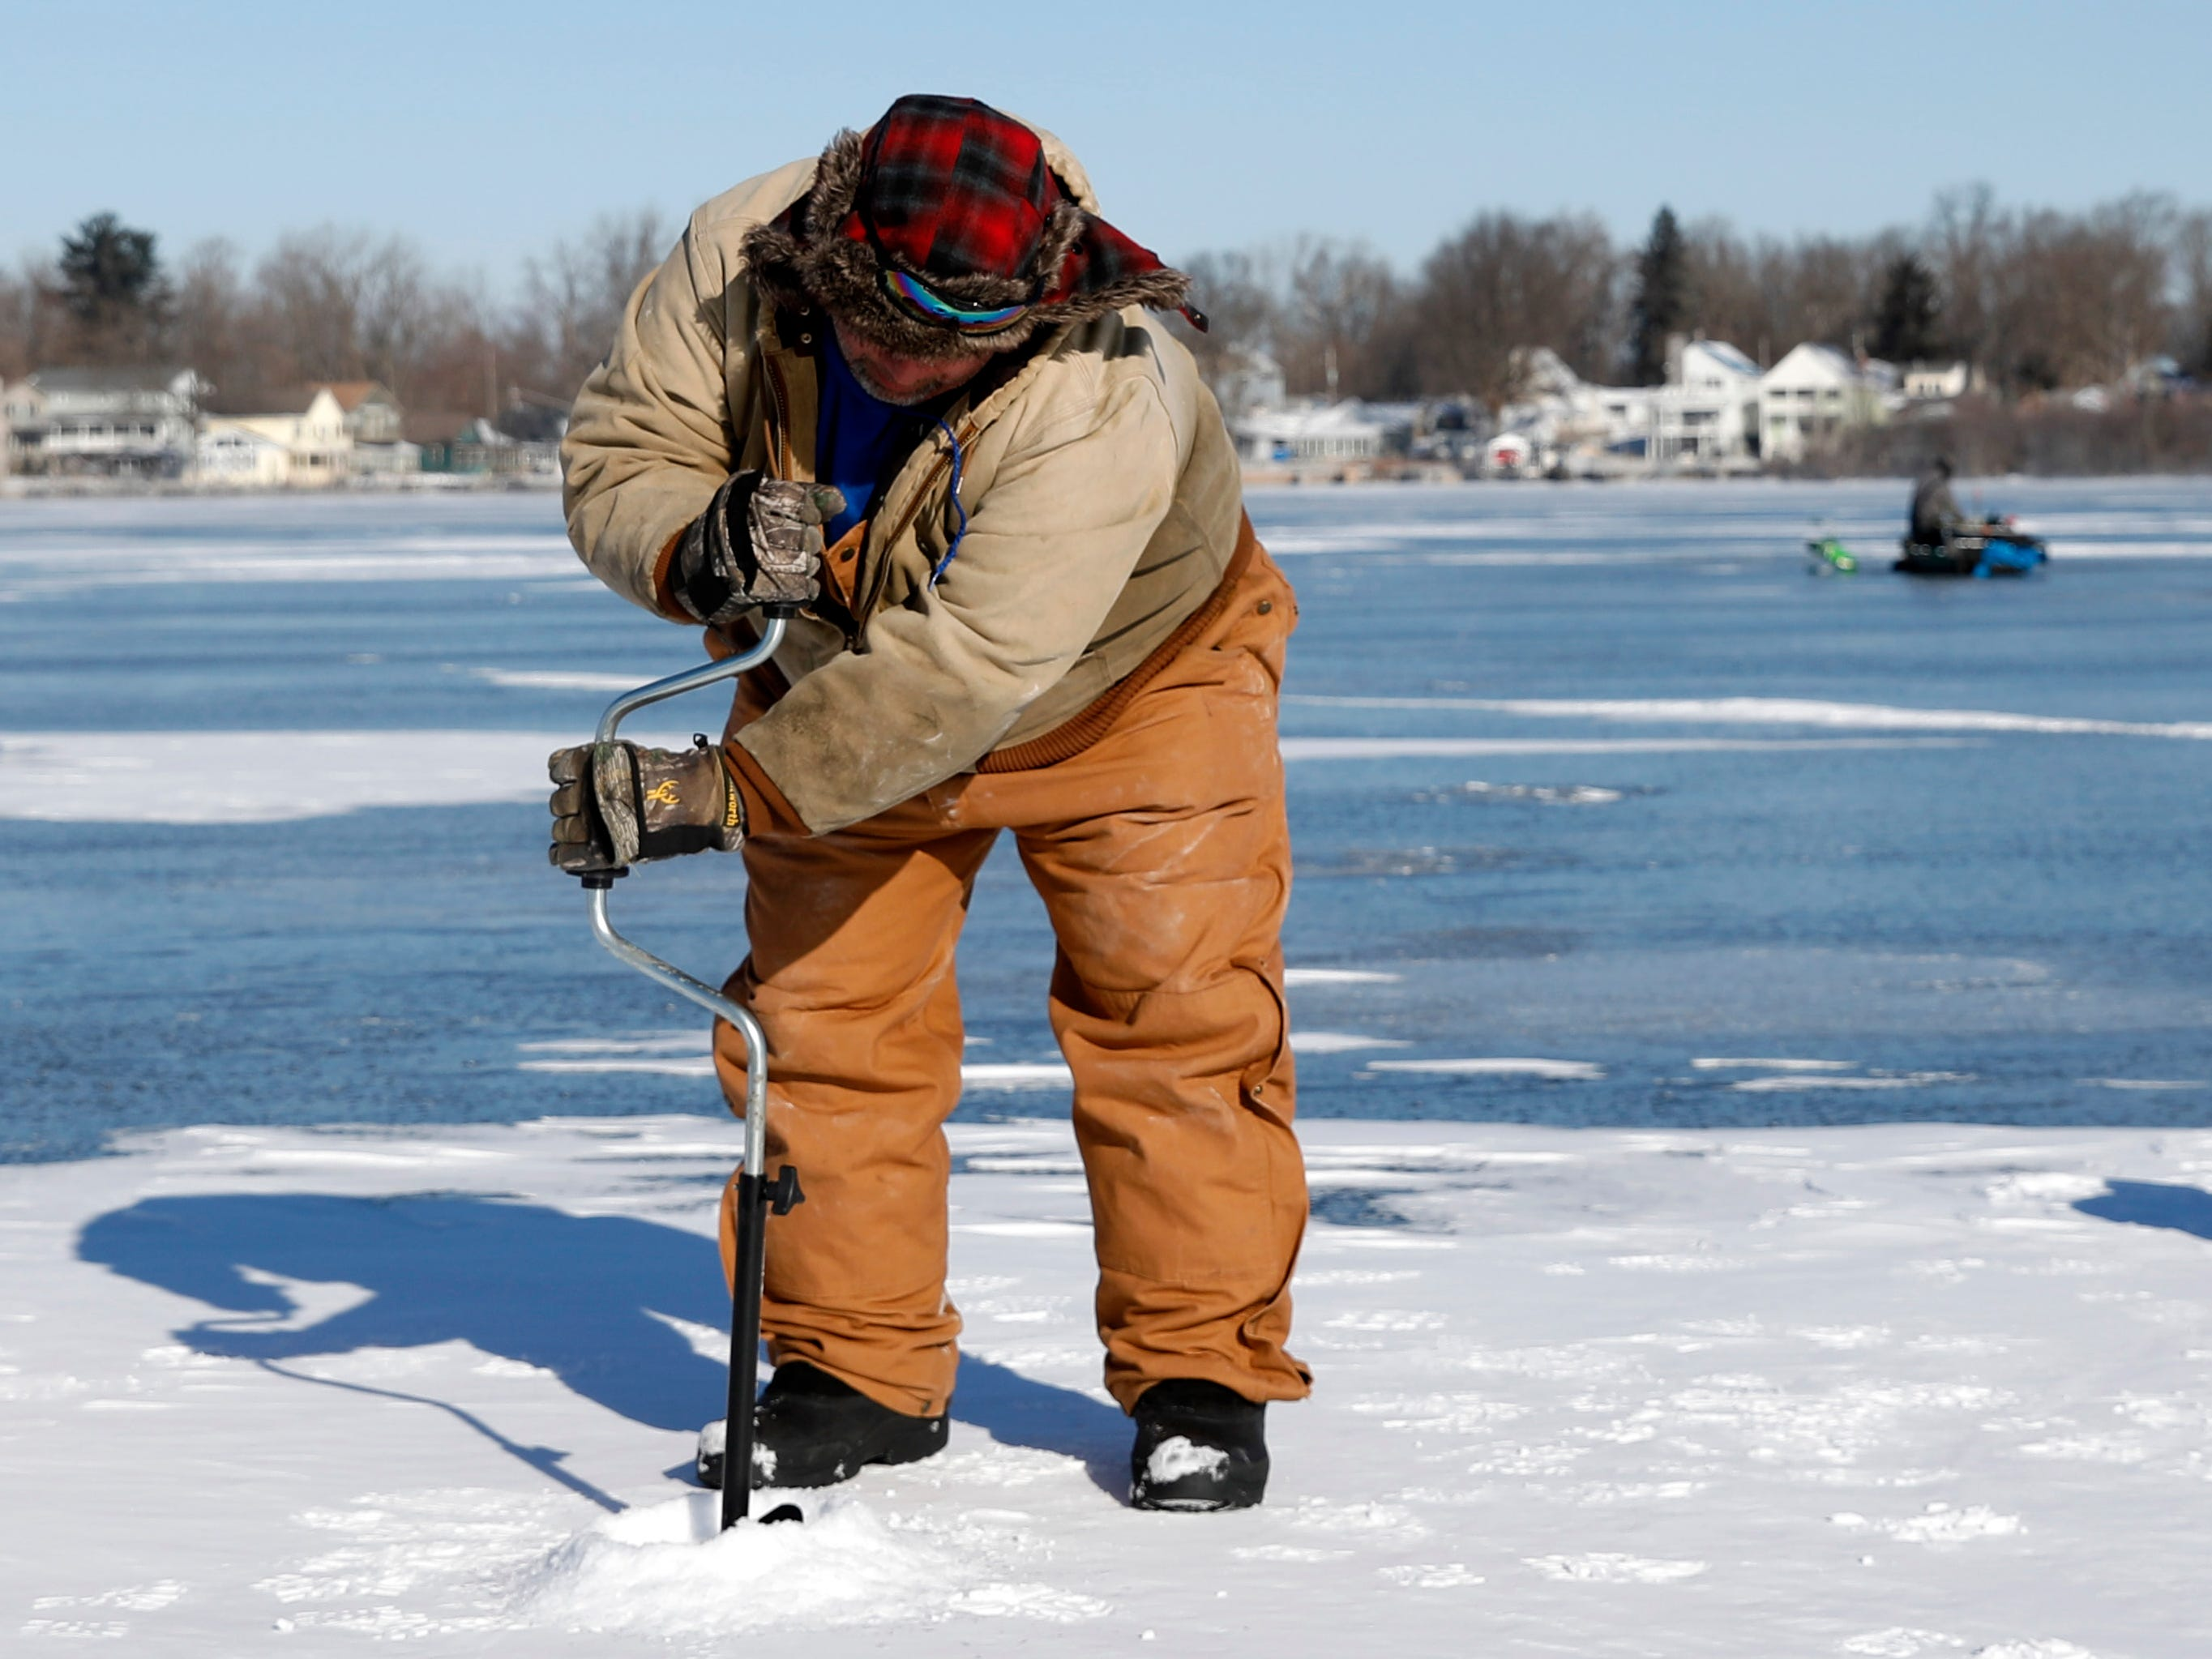 Keith Dilbeck uses an auger to drill a hole into the ice covered surface of Buckeye Lake Thursday morning, Jan. 31, 2019. Freezing temperatures this week have formed more than five inches of ice on the lake's surface, and despite single digit temperatures and a wind chill advisory several people took the opportunity to ice fish.